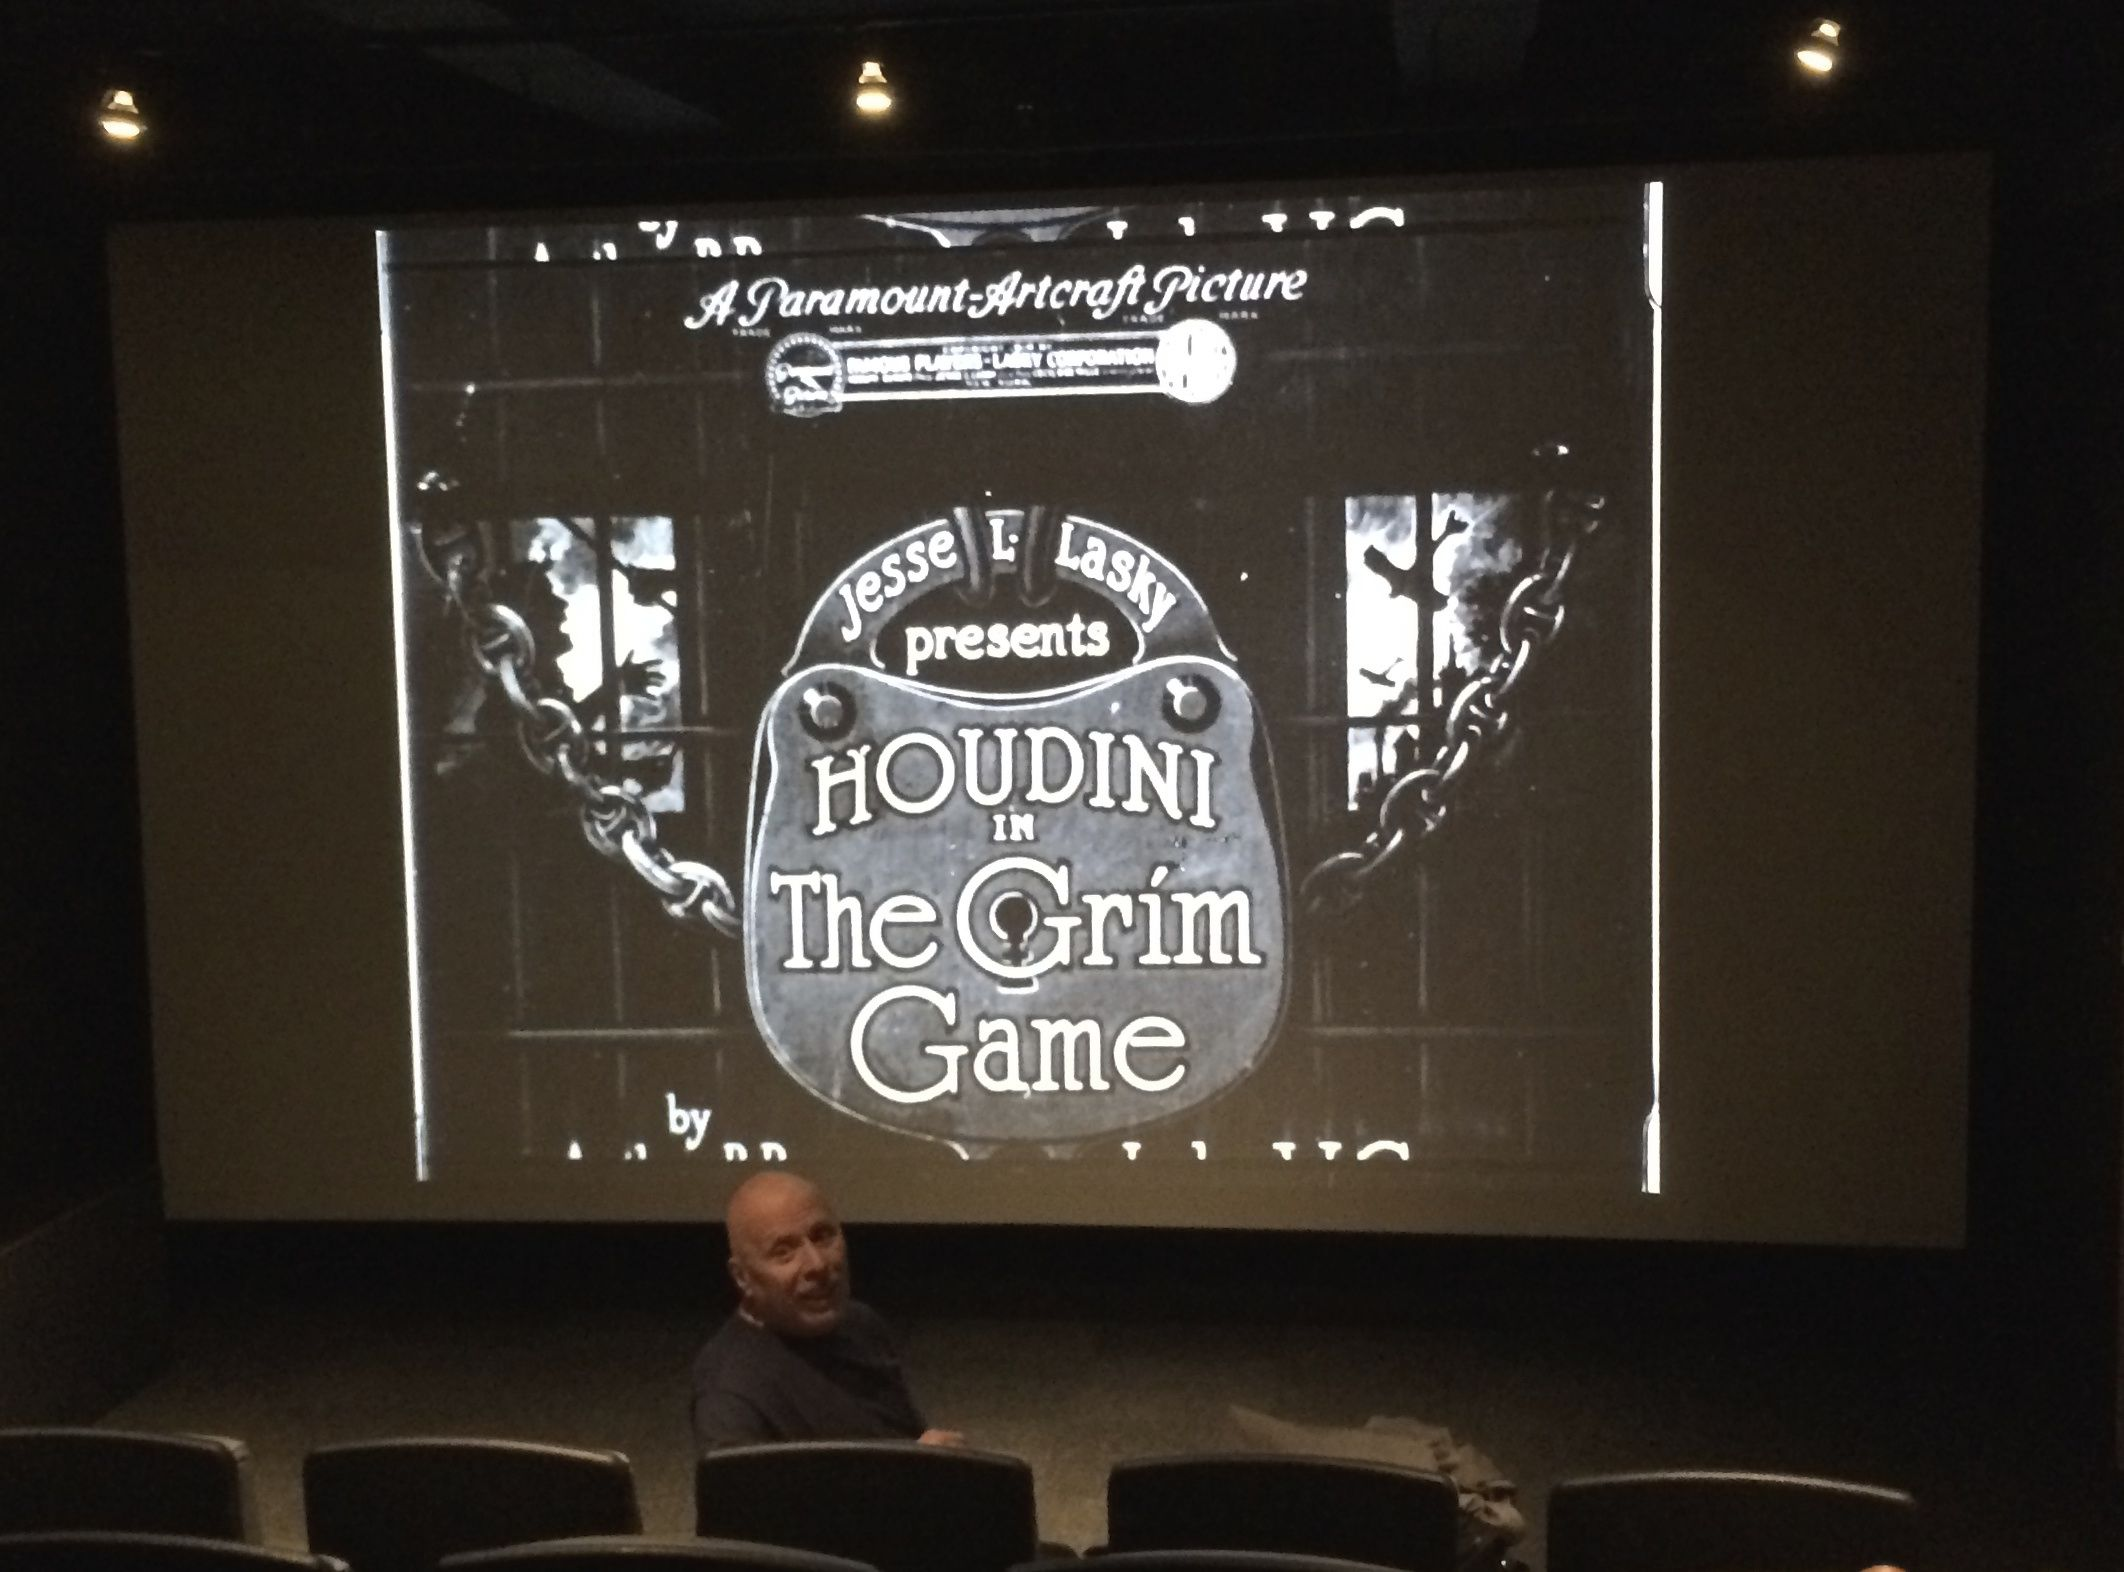 Dick Brookz in studio restoring Houdini's long lost-best film The Grim Game 2015